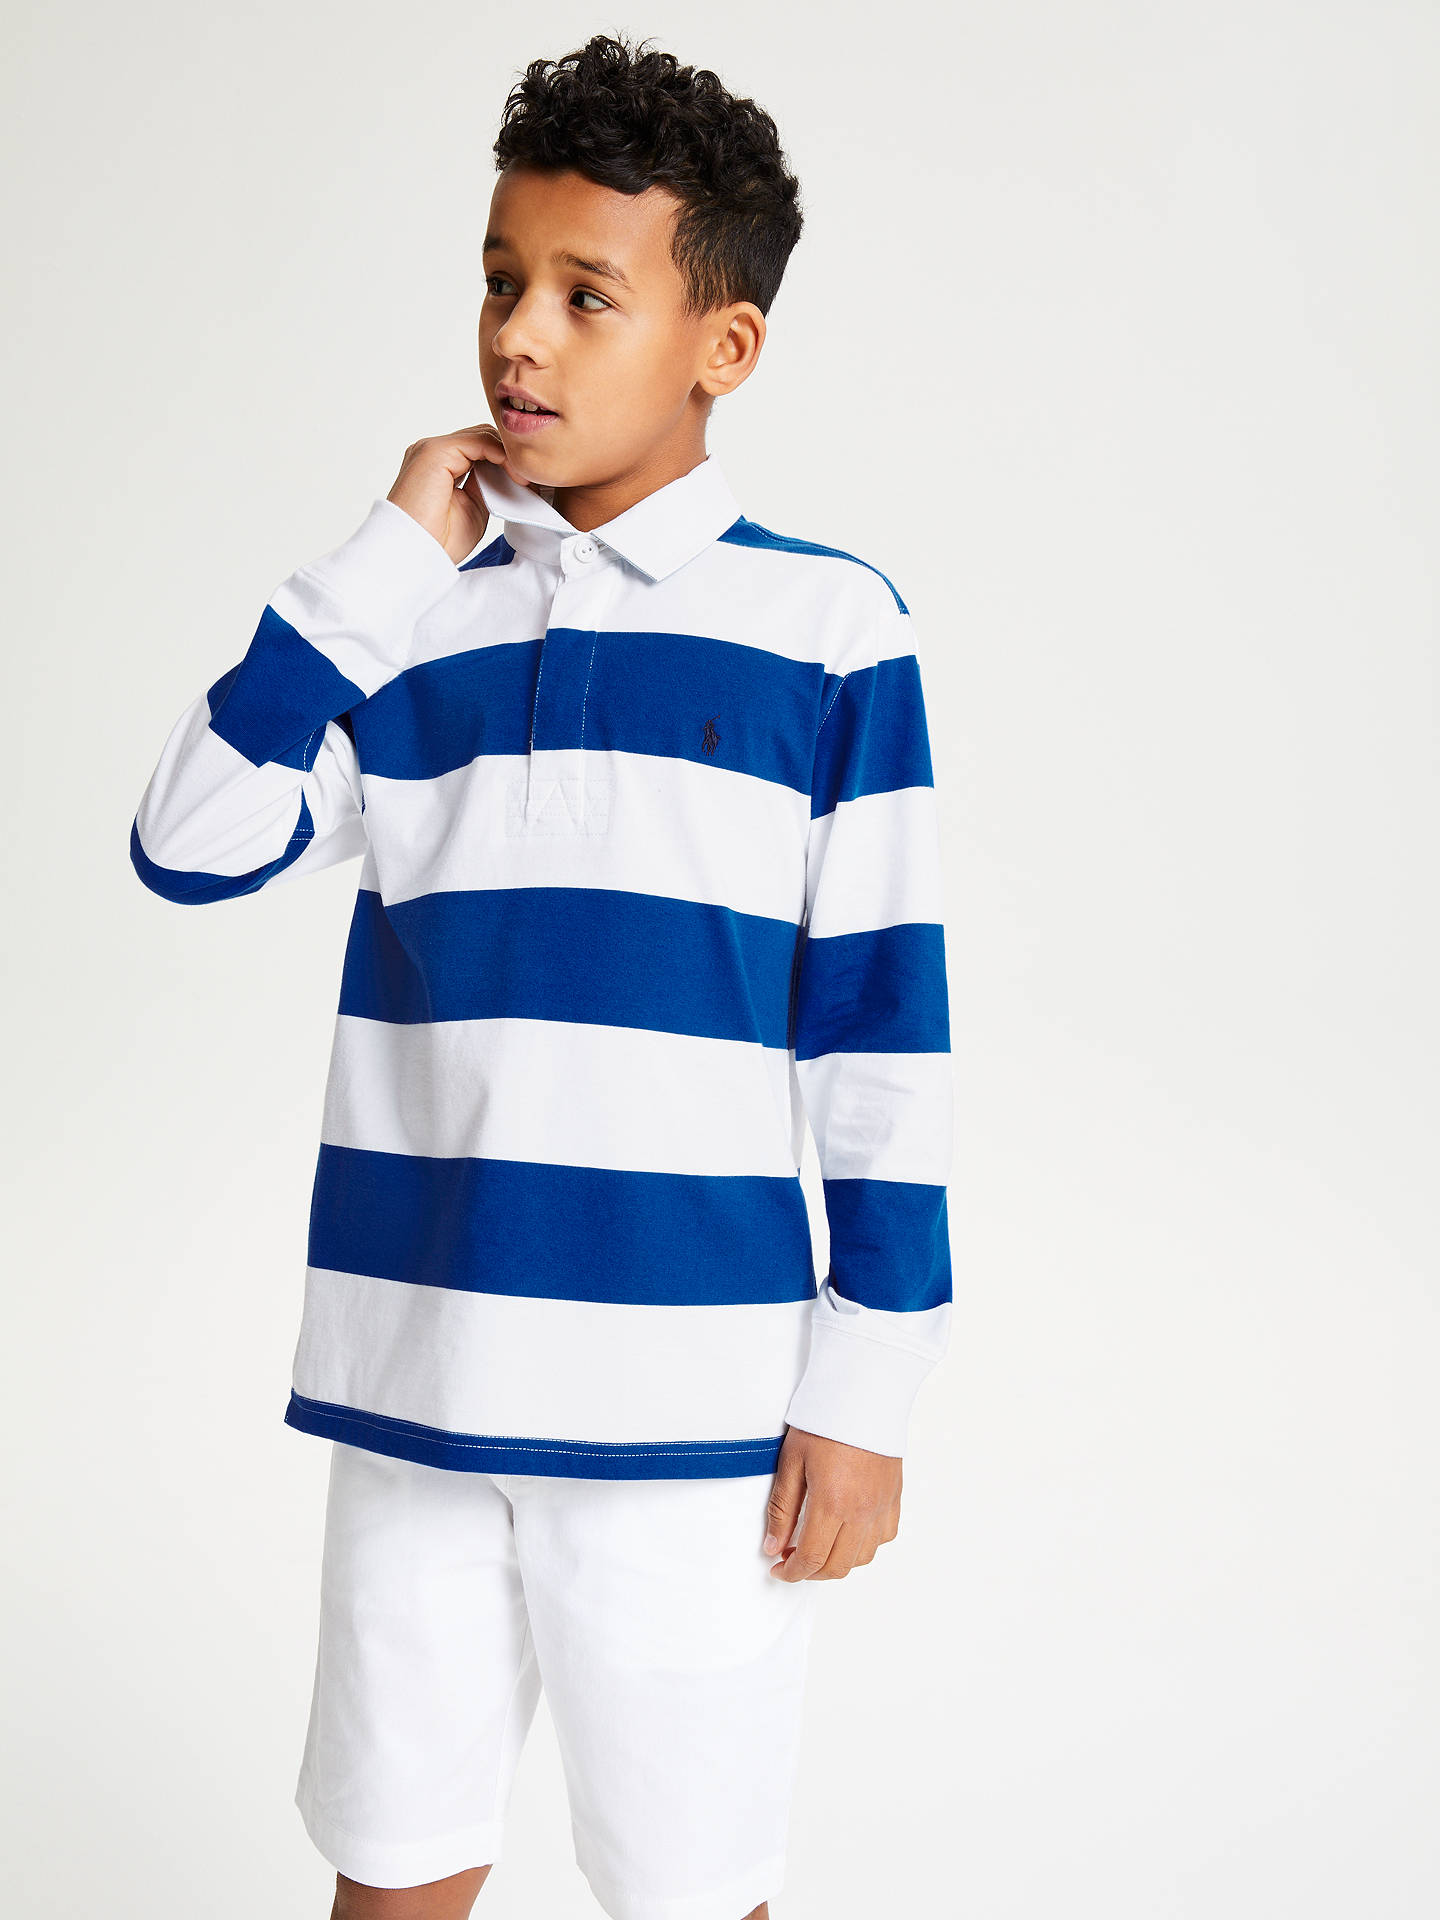 18c372354d5 Polo Ralph Lauren Boys' Rugby Top, Blue/Multi at John Lewis & Partners